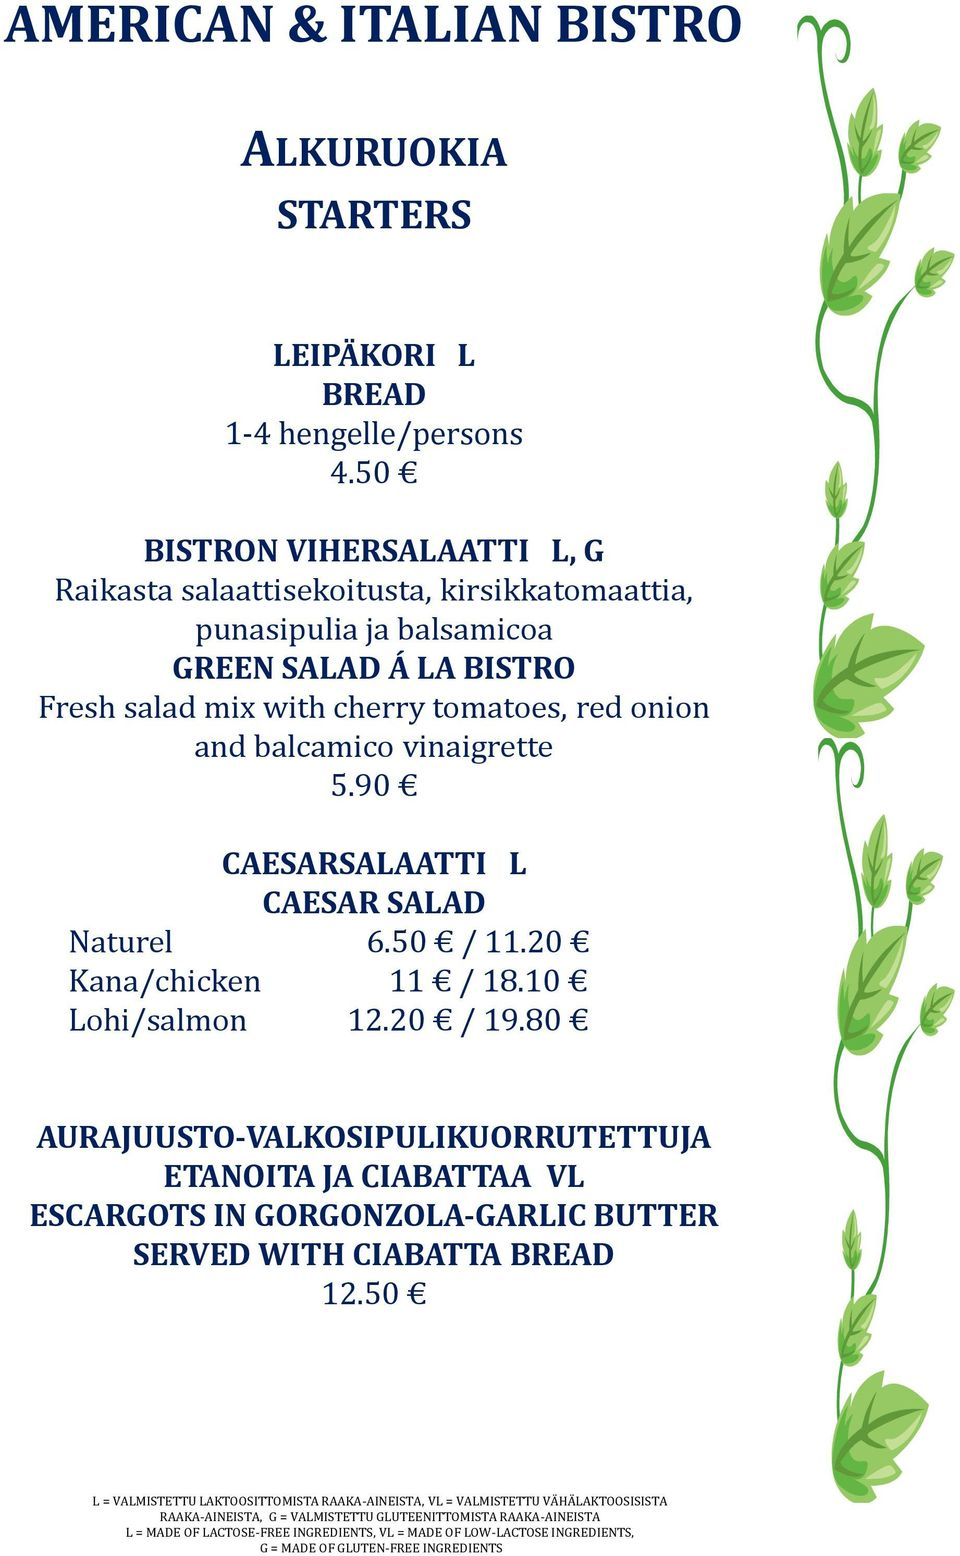 Fresh salad mix with cherry tomatoes, red onion and balcamico vinaigrette 5.90 CAESARSALAATTI L CAESAR SALAD Naturel 6.50 / 11.